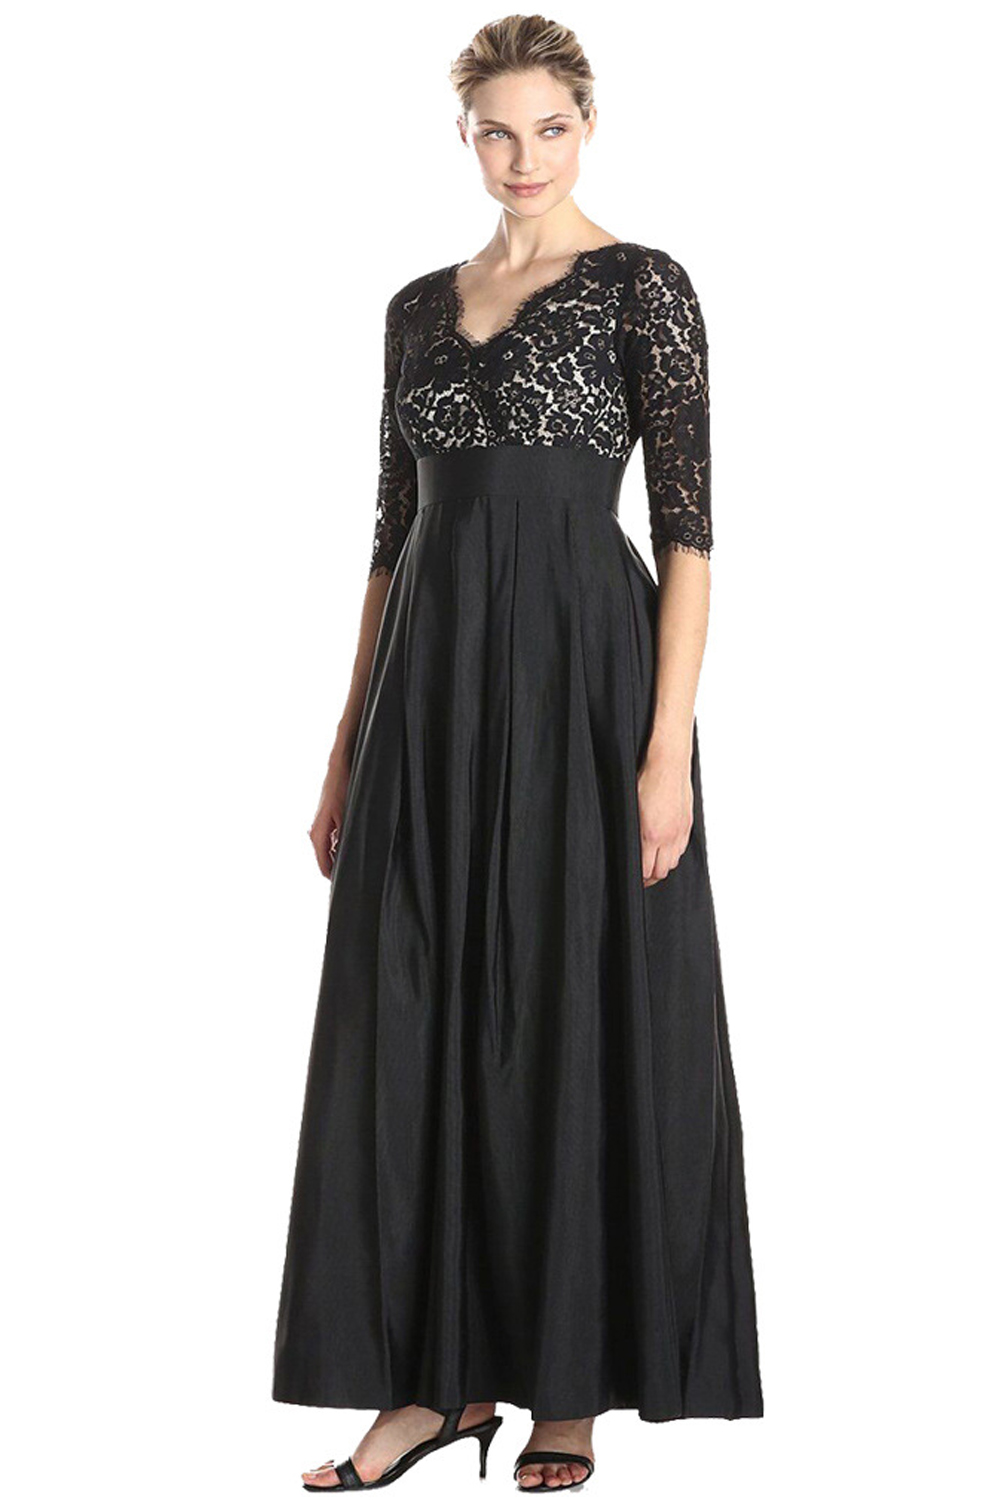 510507ba41d UNOMATCH WOMEN PLUS SIZE LACE STITCHING LONG PARTY MAXI DRESS BLACK ...